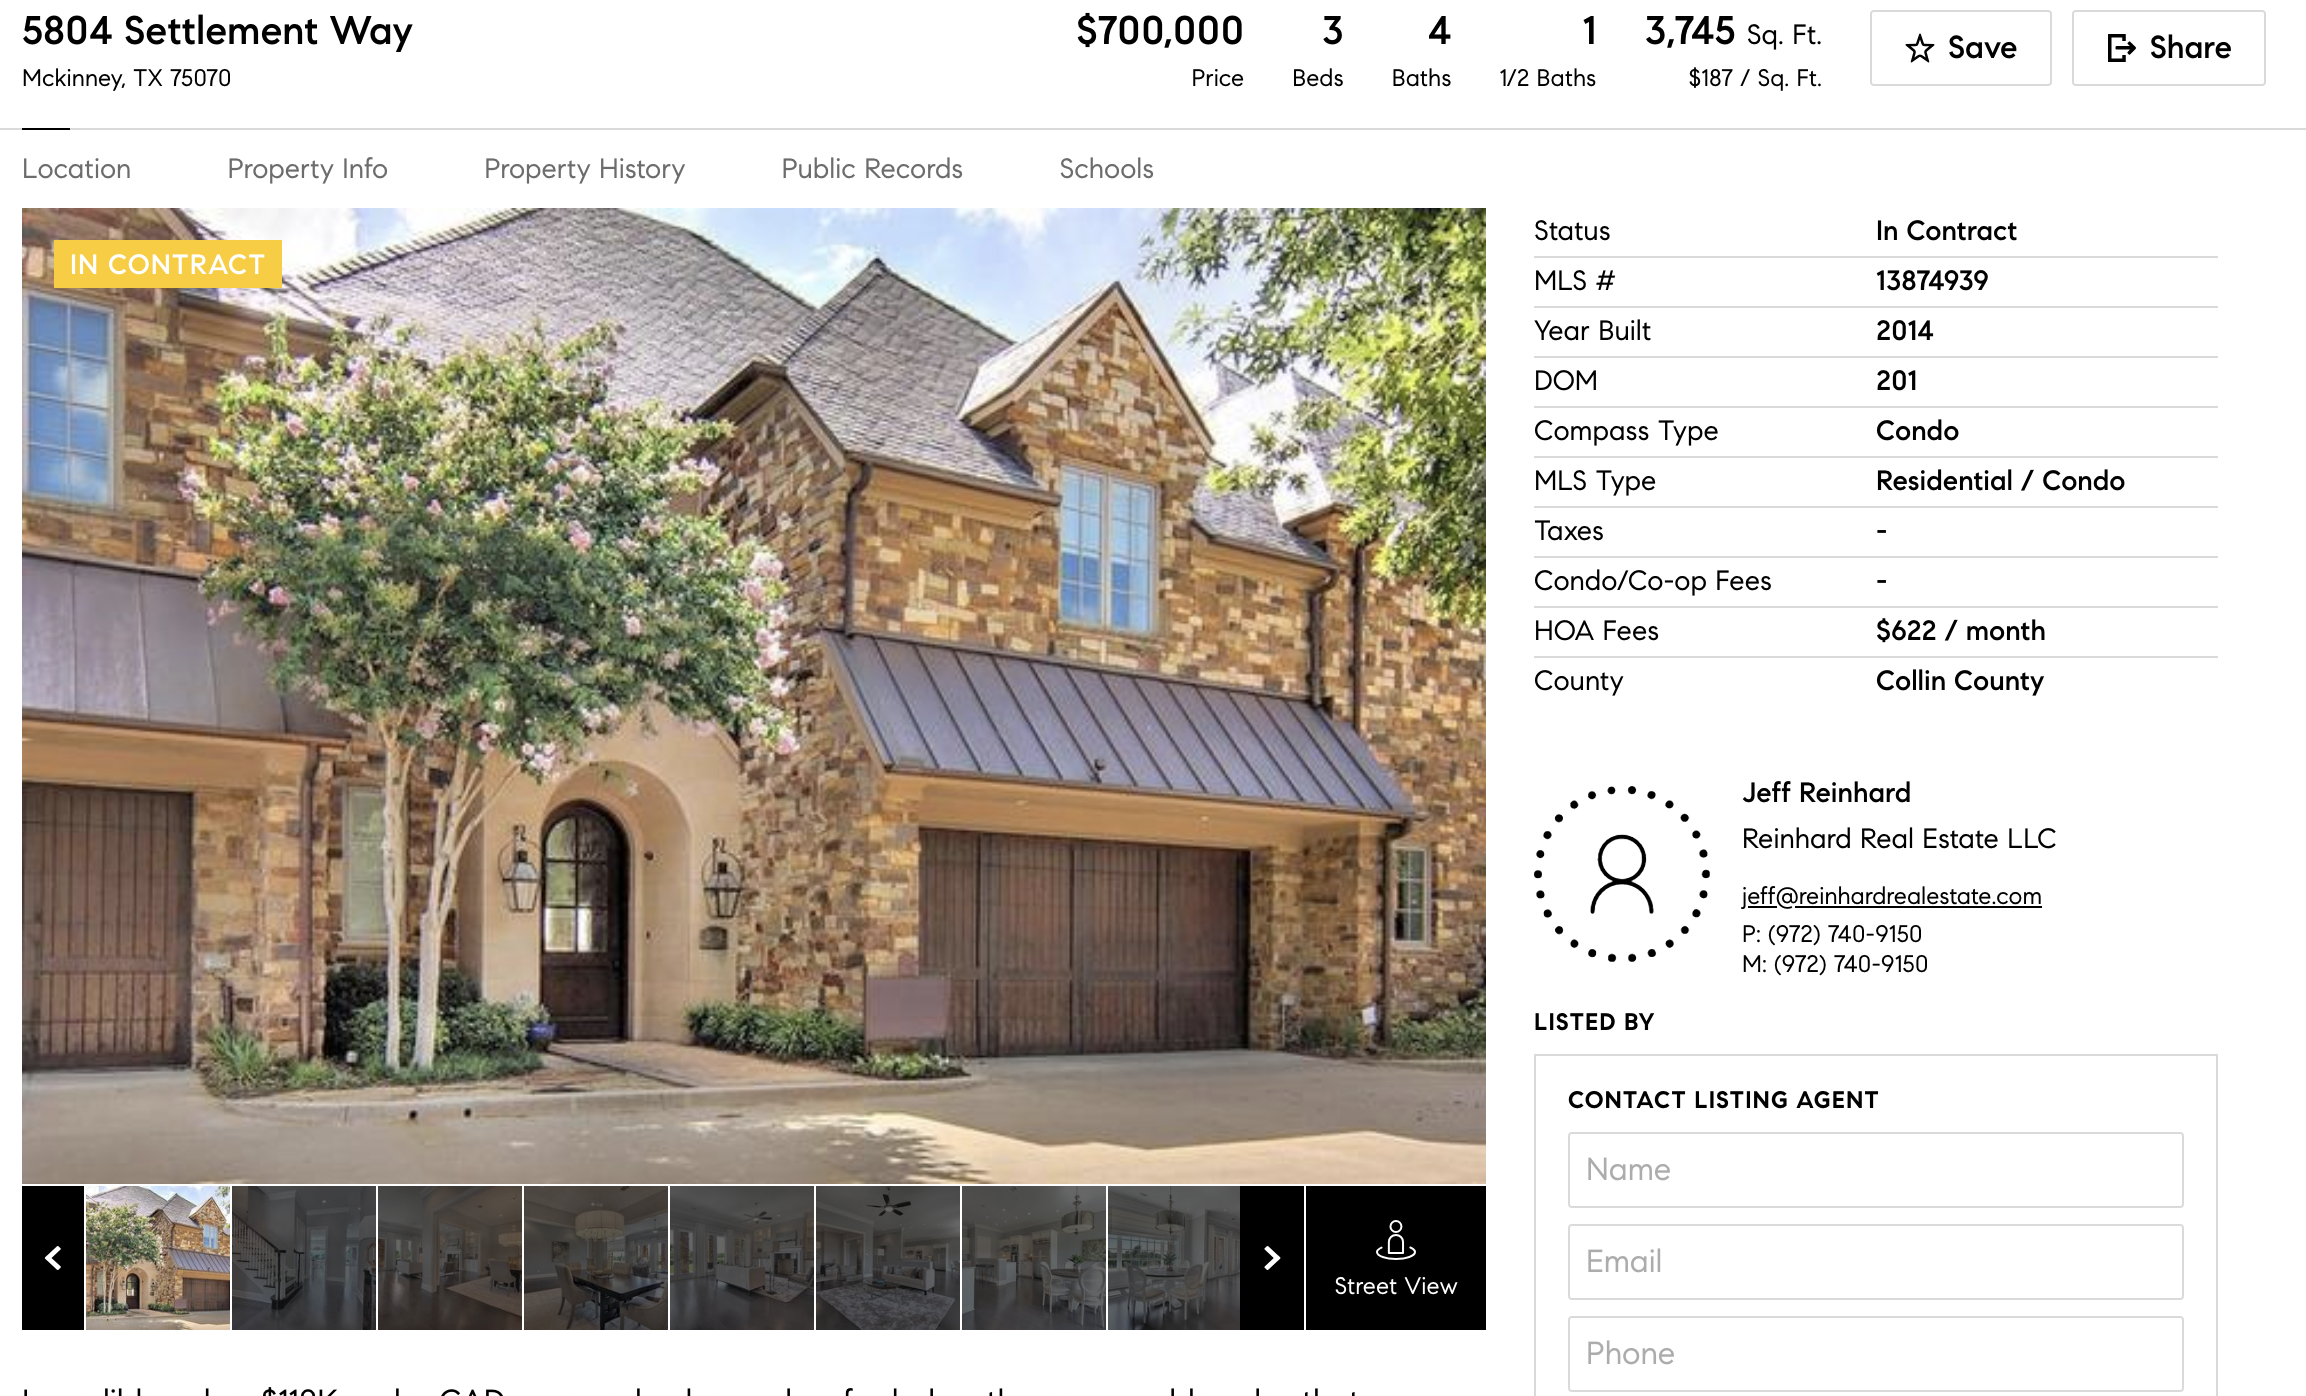 Compass Displaying Listing Agents Names Now on Consumer Website